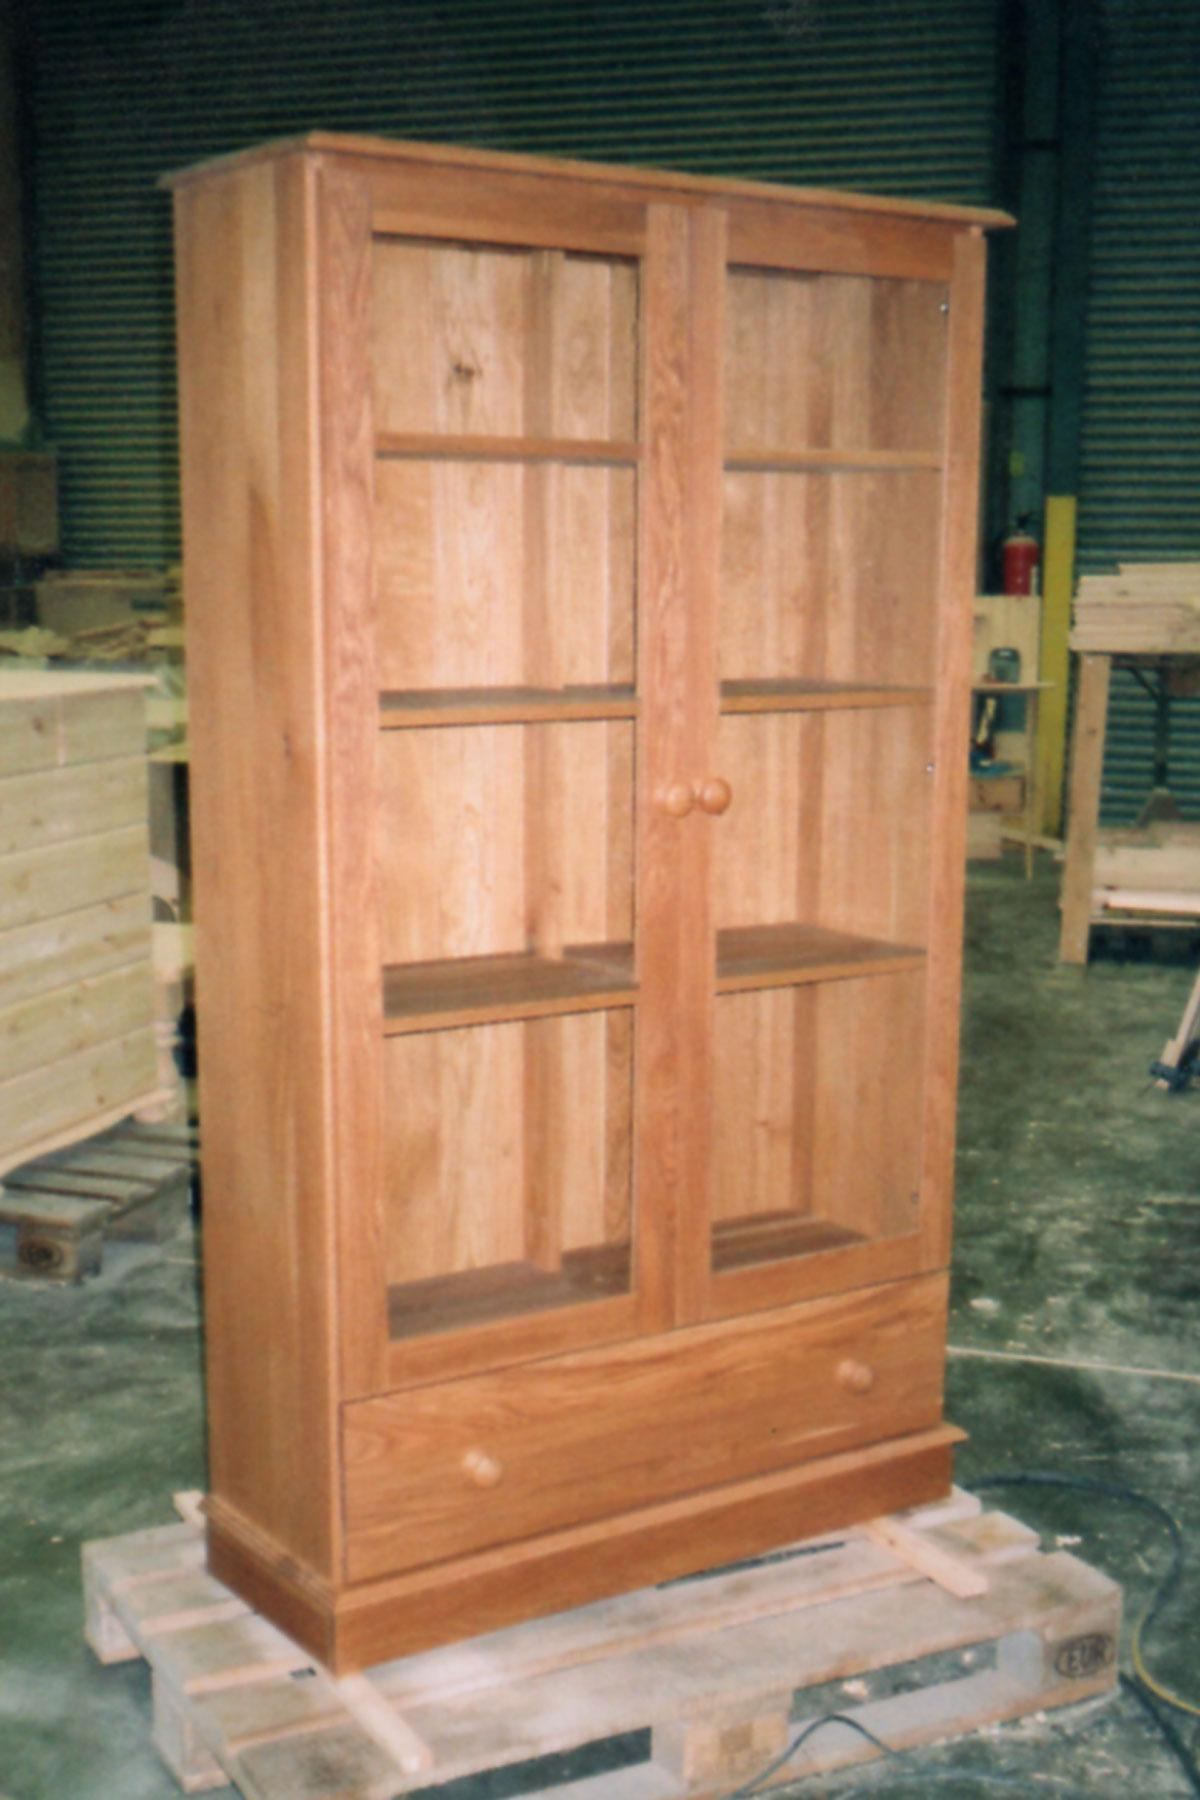 Made to measure Bookcases and Display Cabinets